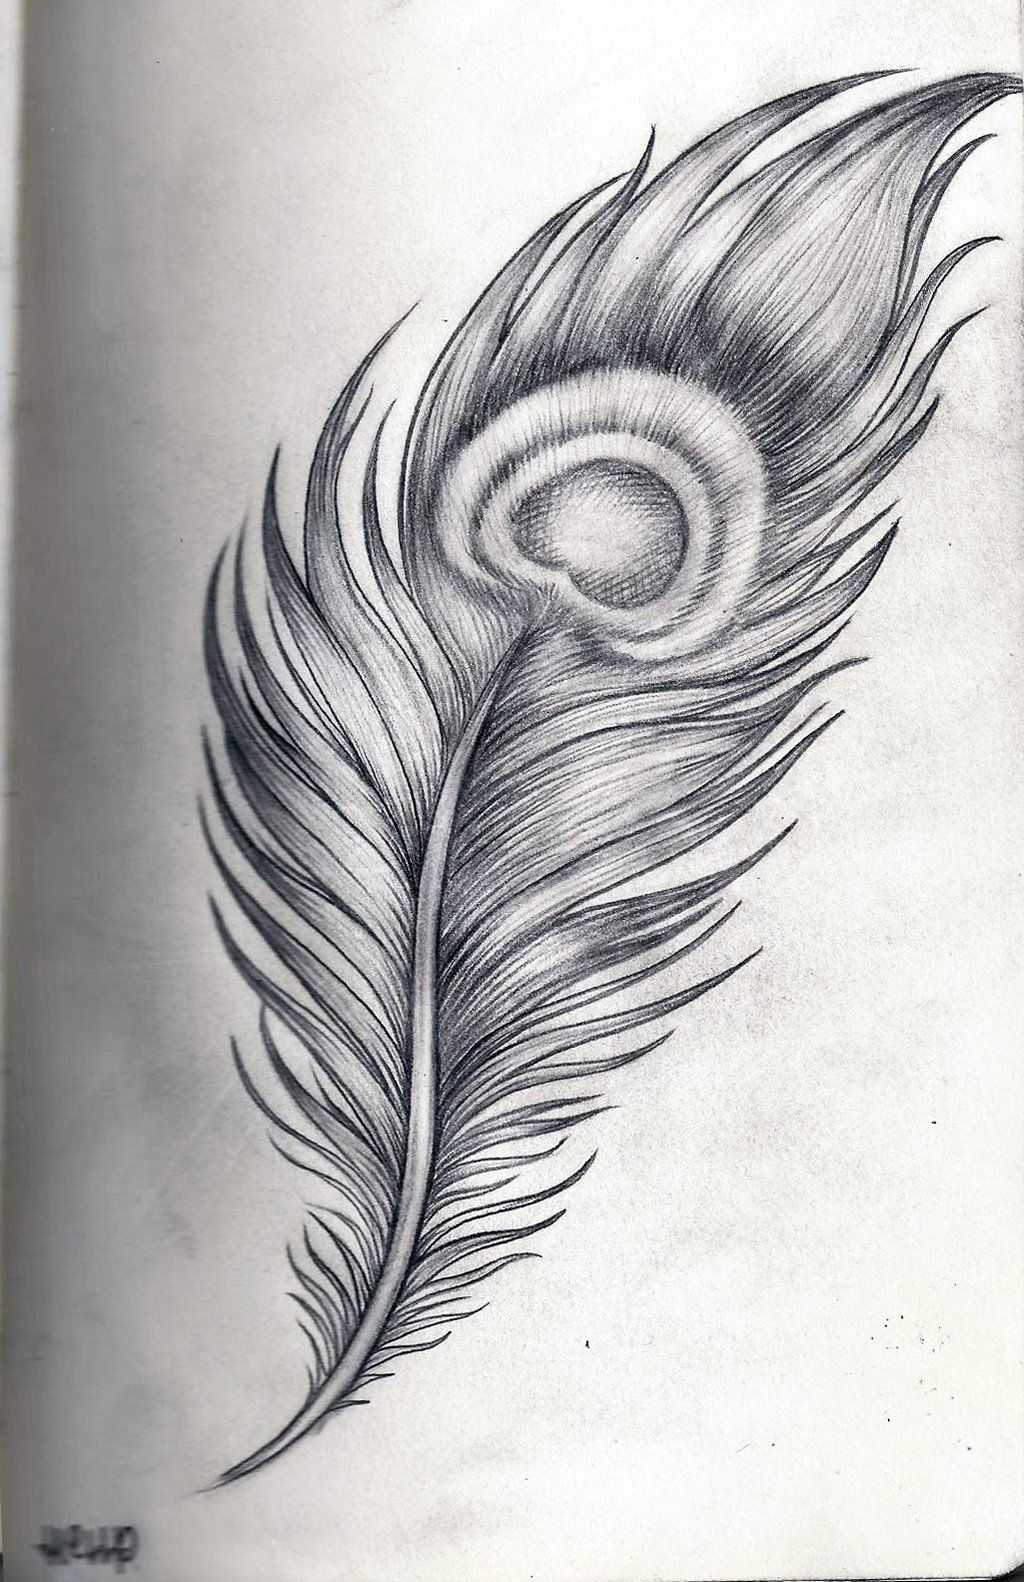 Hell P Art - Peacock feather by Hell2theP on deviantART | tatuajes ...